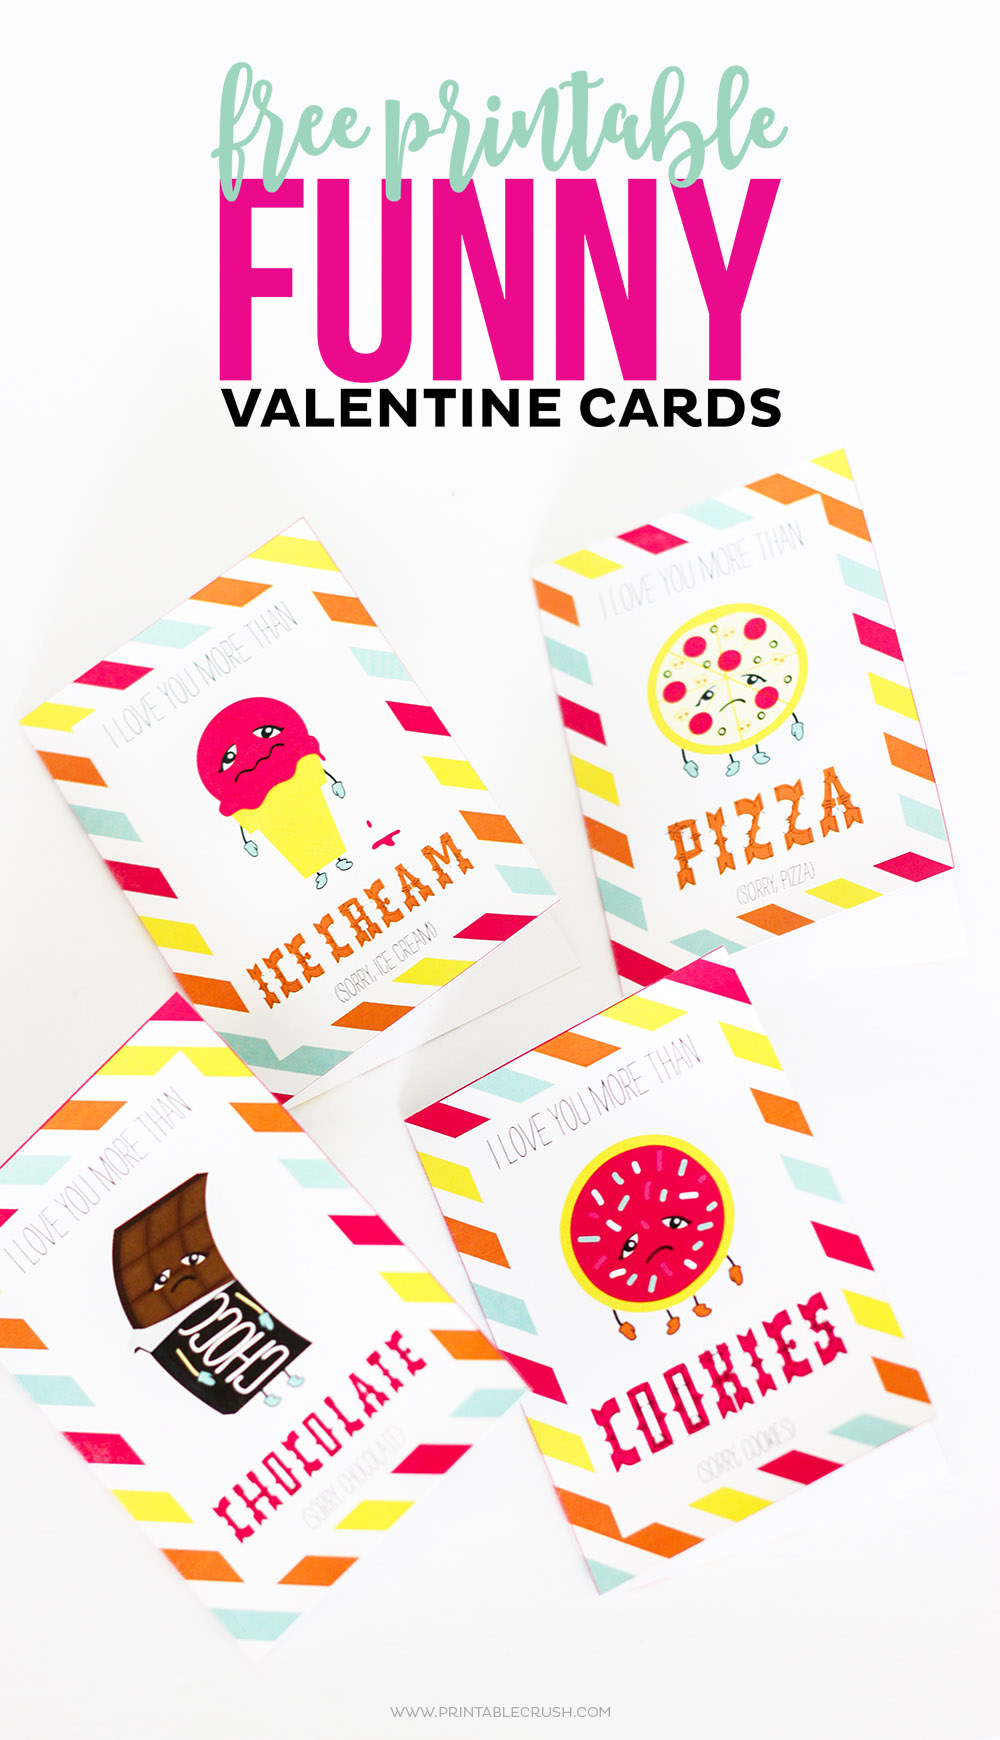 FREE Printable Funny Valentine Cards Printable Crush – Print Valentine Cards Free